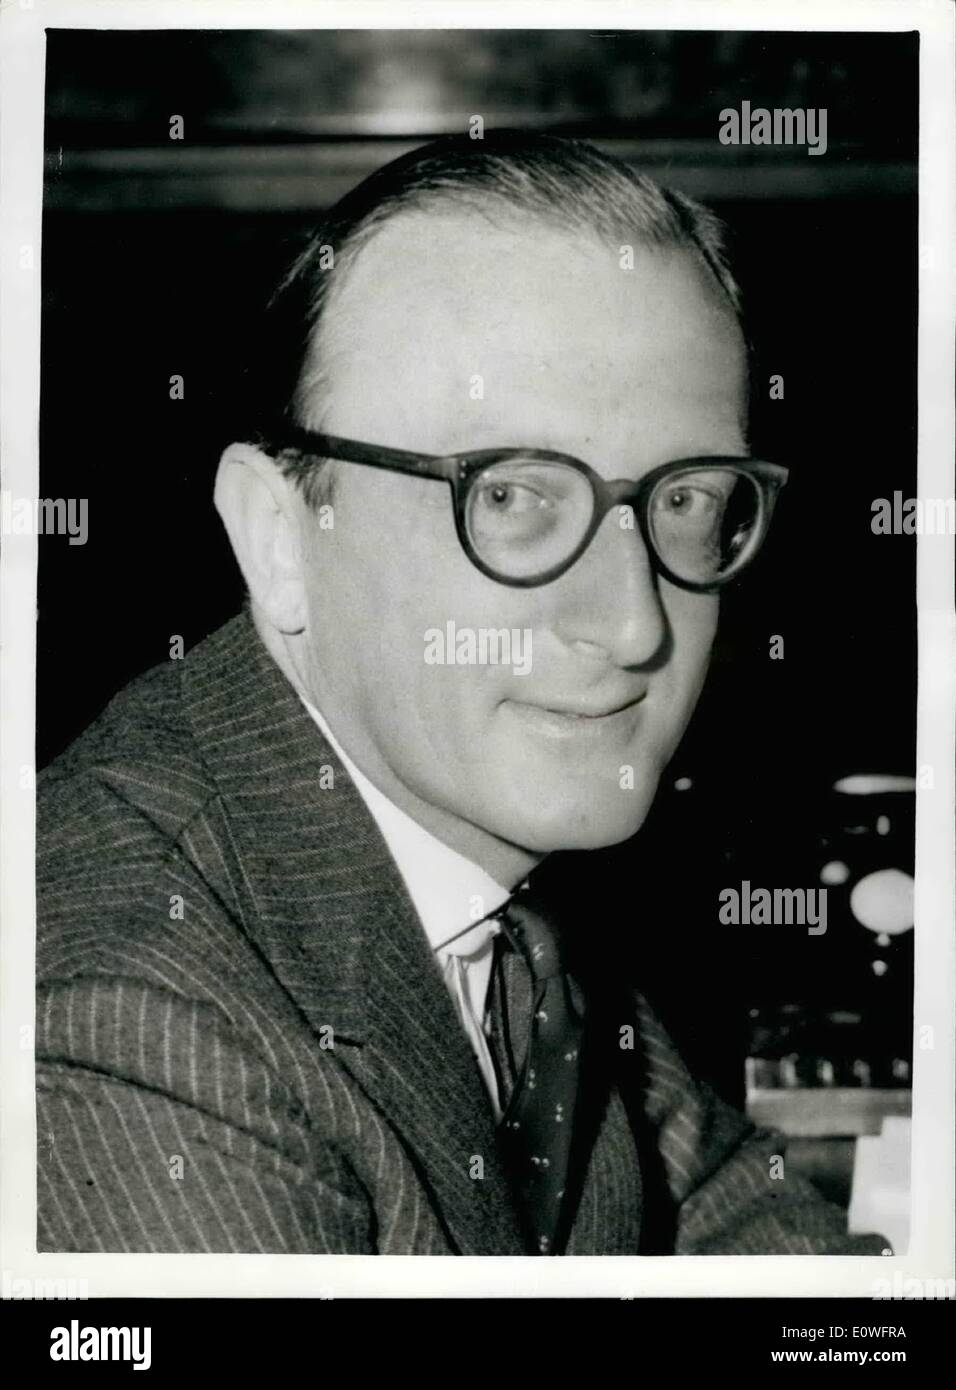 Nov. 11, 1962 - LABOUT ATTACK ON GOVERNMENT - FOLLOWING SPY CASE. Labour's ''Shadow'' Defence Minister - MR. PATRICK GORDON WALKER, said in the House of Commons today that there seemed to have been a compulsion by the Admiralty to make WILLIAM: VASSAL, the spy now serving 18 years imprisonment - personal assistant to high people in that department.. Defense Minister PETER THORNEYCROFT -in his reply, angril, dismissed some of the 'wild charges' in the case. Present in the House were the First Lord of the Admiralty - LORD CARRINGTON and MR - Stock Image